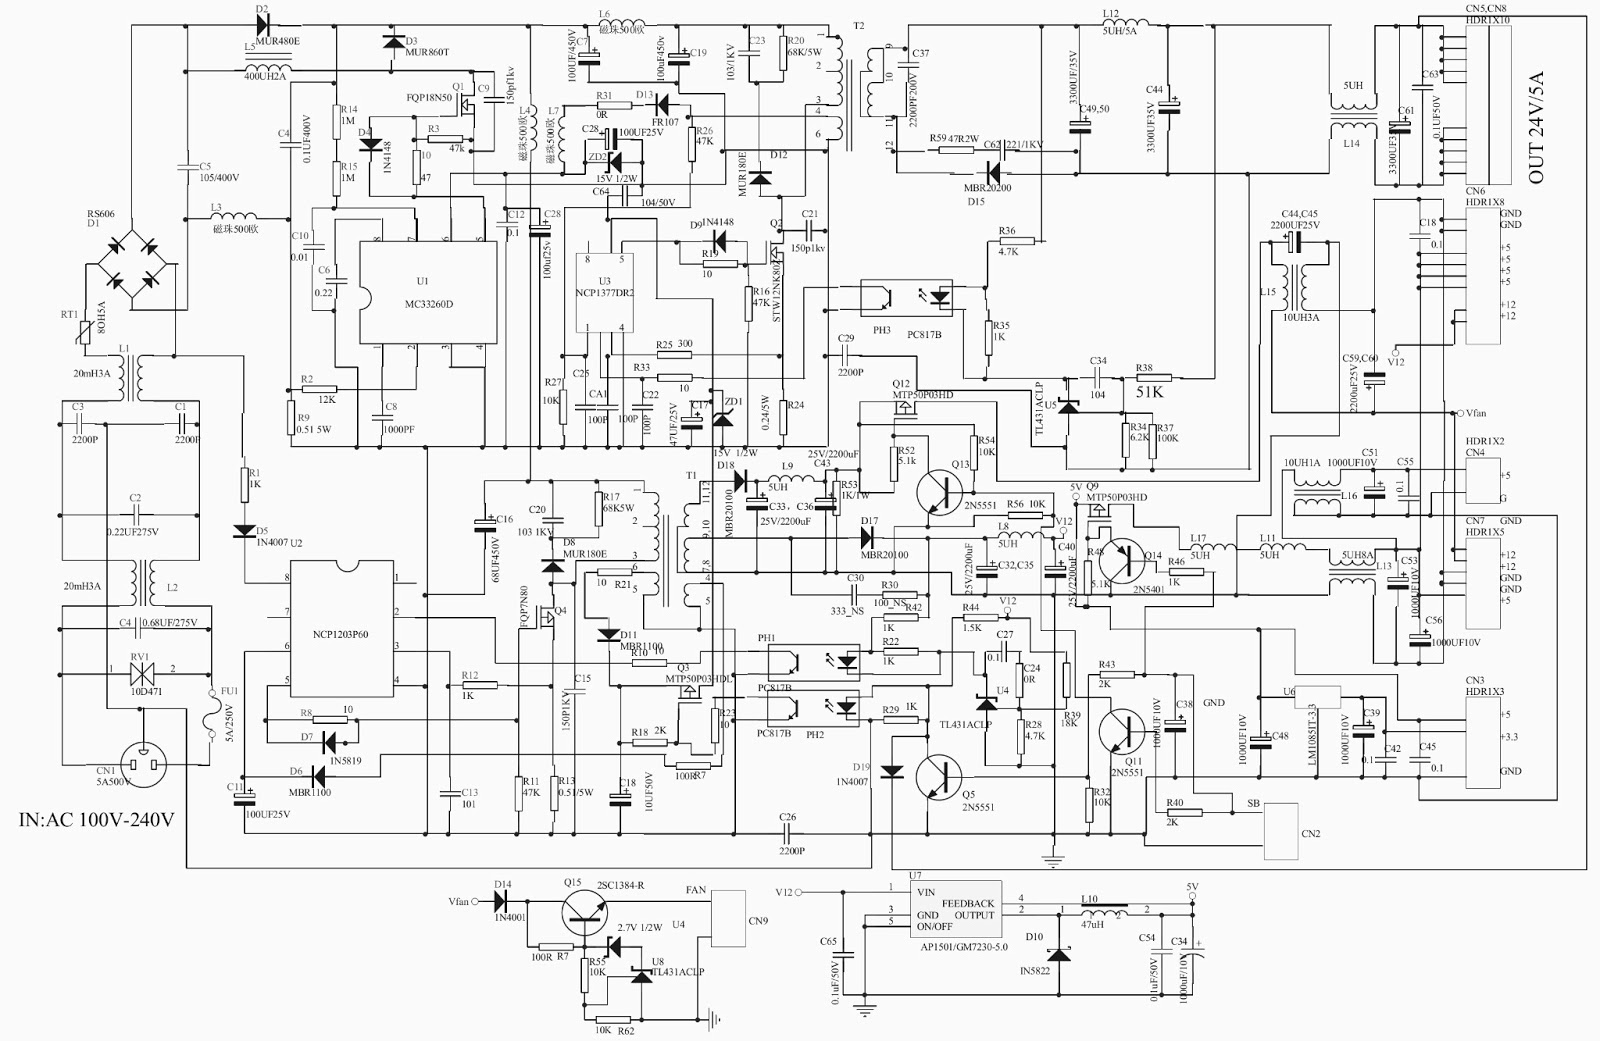 AKIRA+LCT+30KXSTP+ +POWER+SUPPLY.bmp lg tv circuit diagram readingrat net samsung led tv wiring diagram at bakdesigns.co